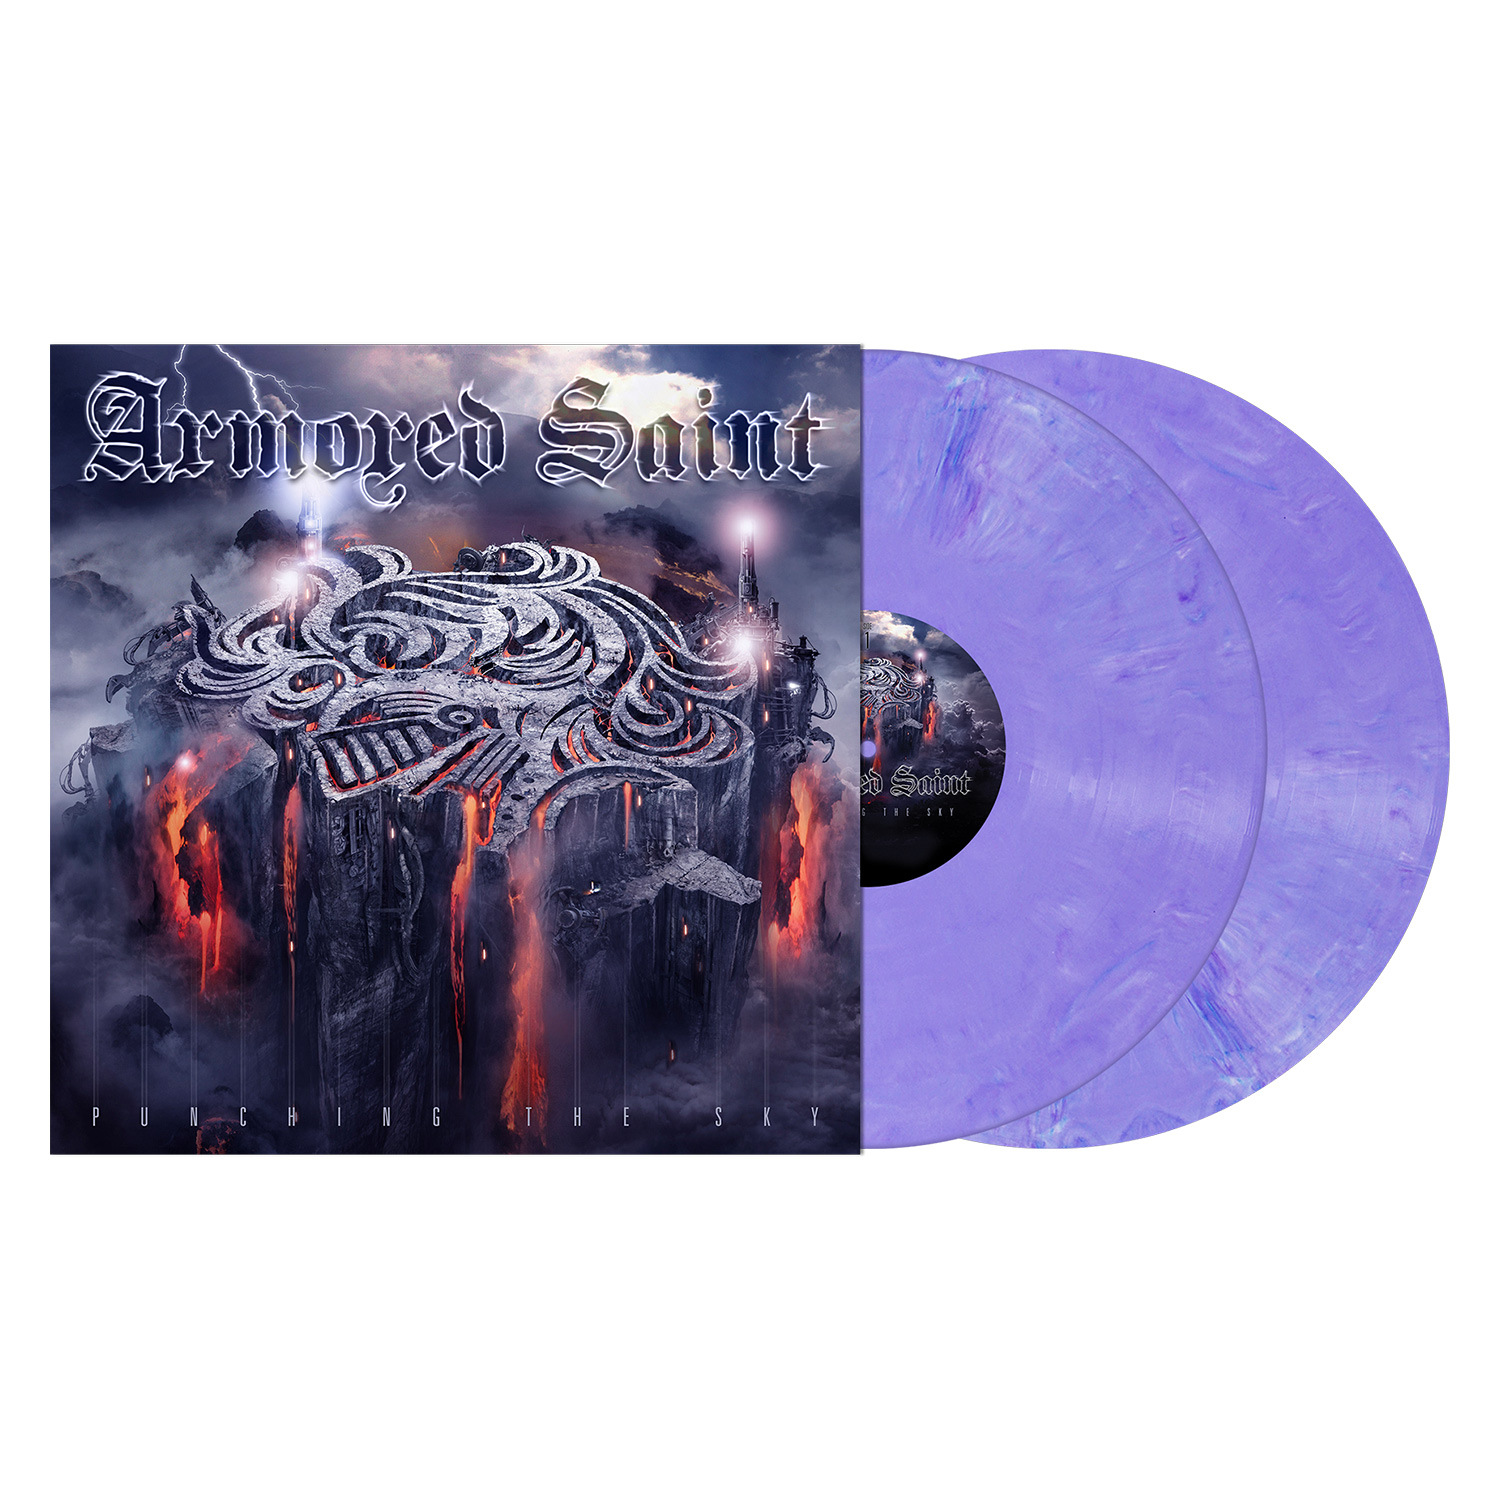 Punching the Sky (Special Edition Lavender Vinyl)